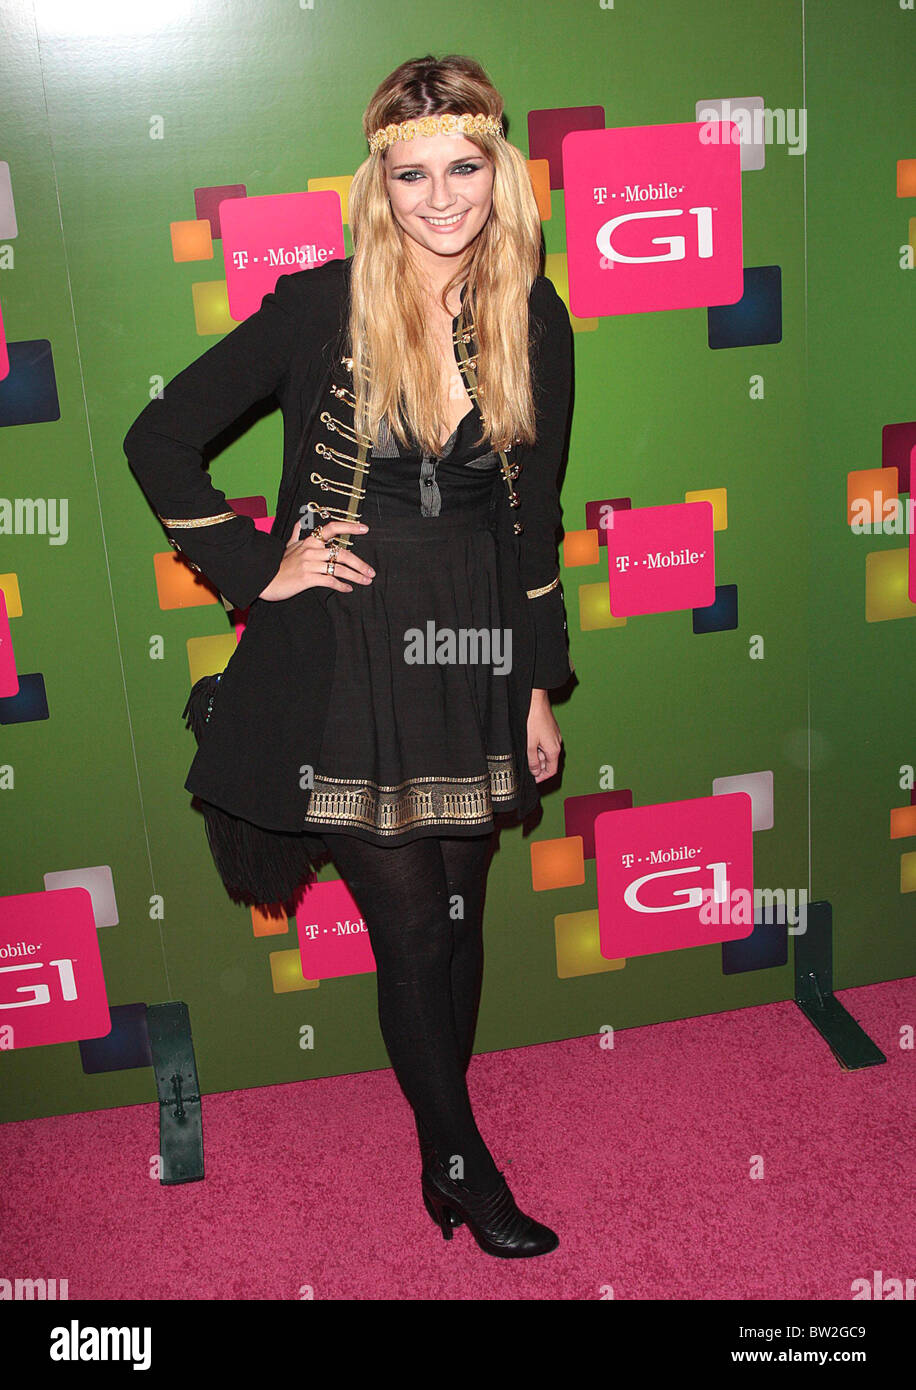 T-Mobile G1 Android-Powered Mobile Phone Launch Party - Stock Image